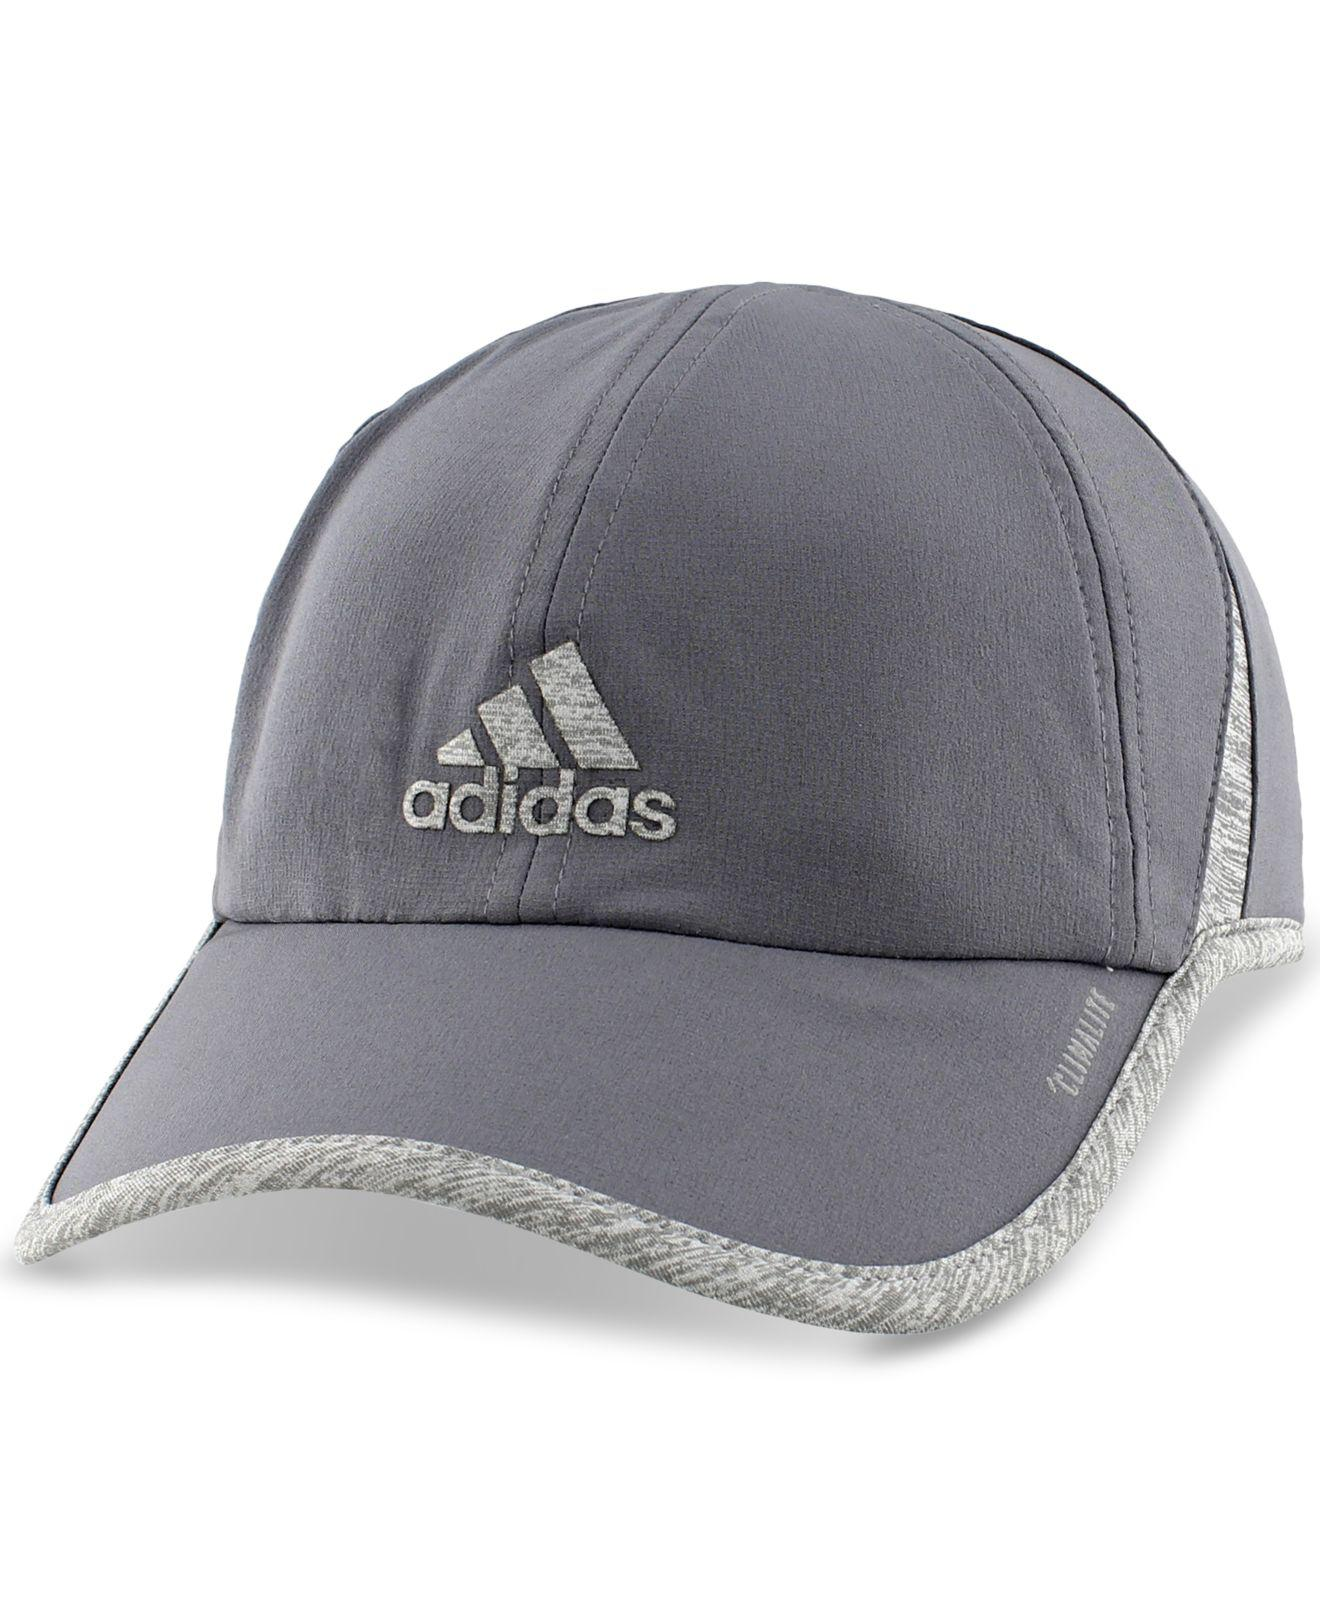 0b71216a1b6a Lyst - adidas Superlite Climalite® Cap in Gray for Men